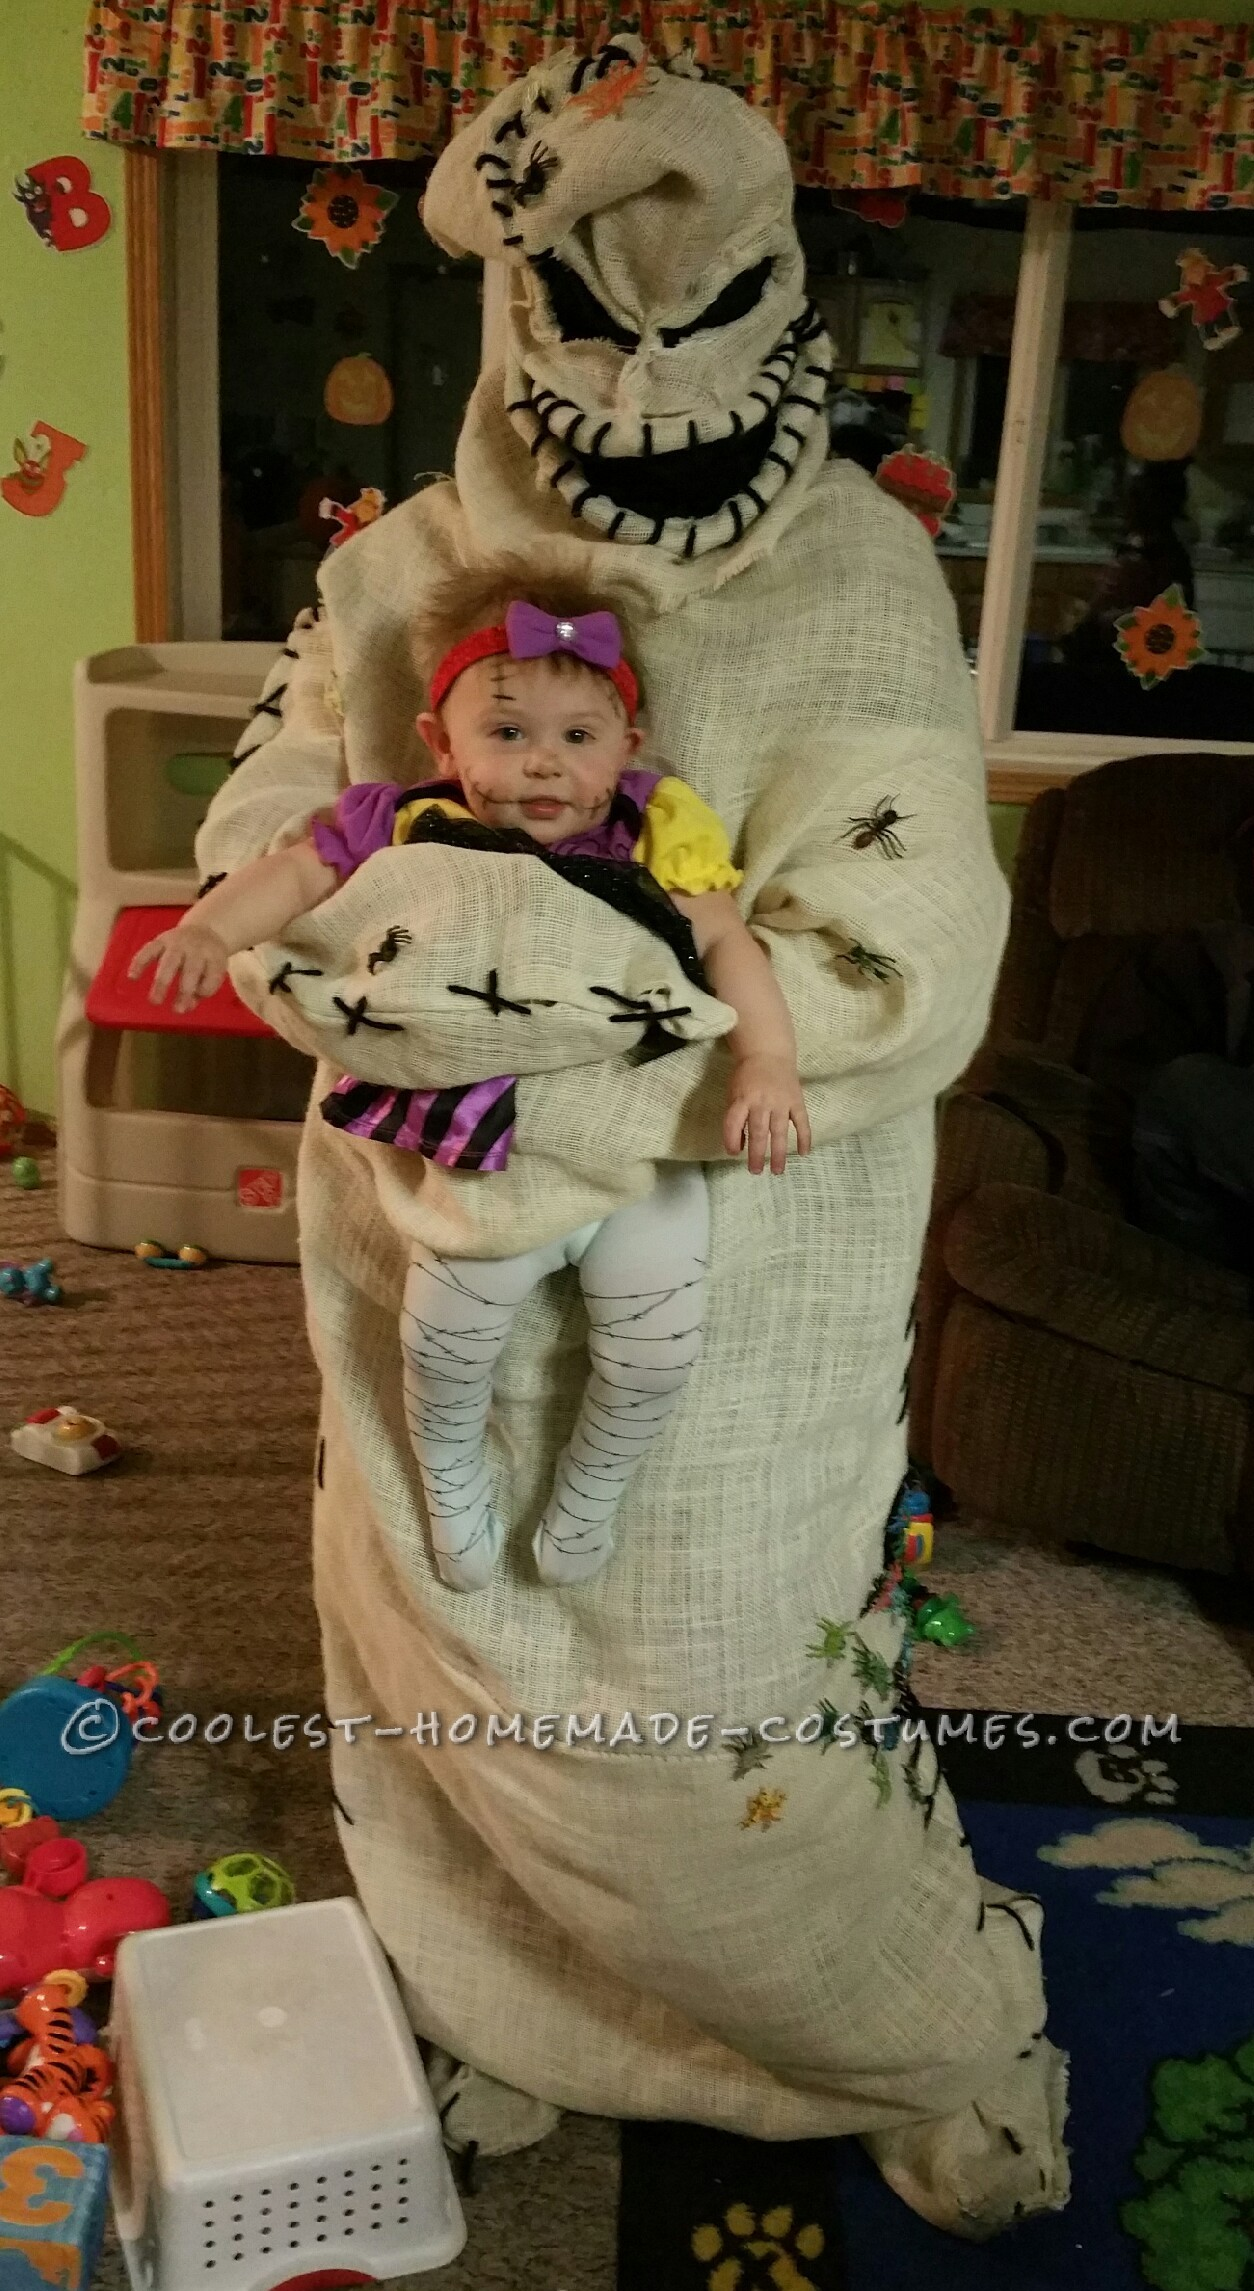 Coolest Oogie Boogie Costume And Baby Sally Doll